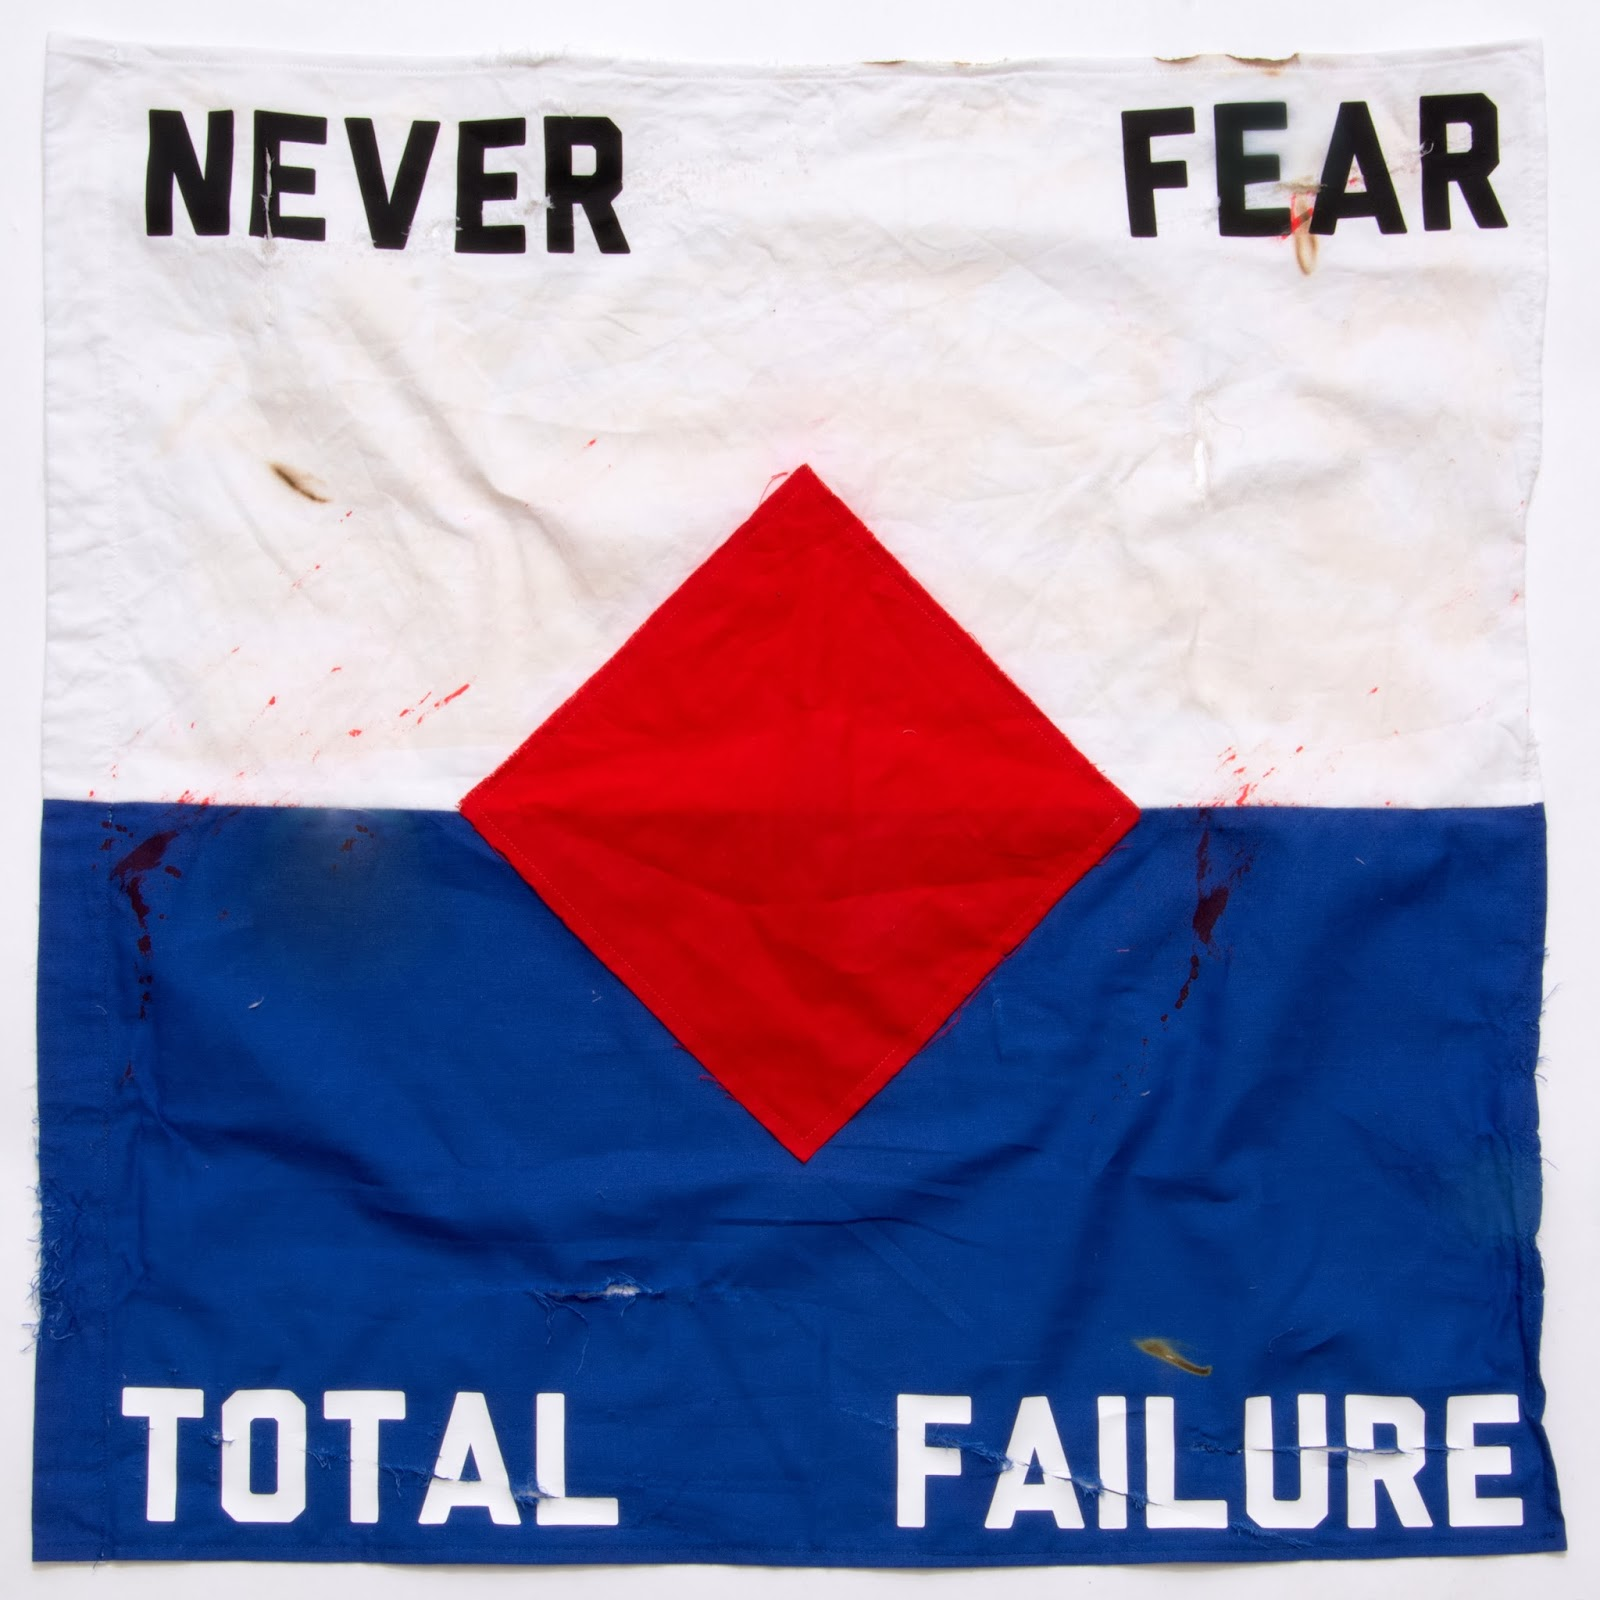 Ghost Twins set to release their debut album Never Fear Total Failure